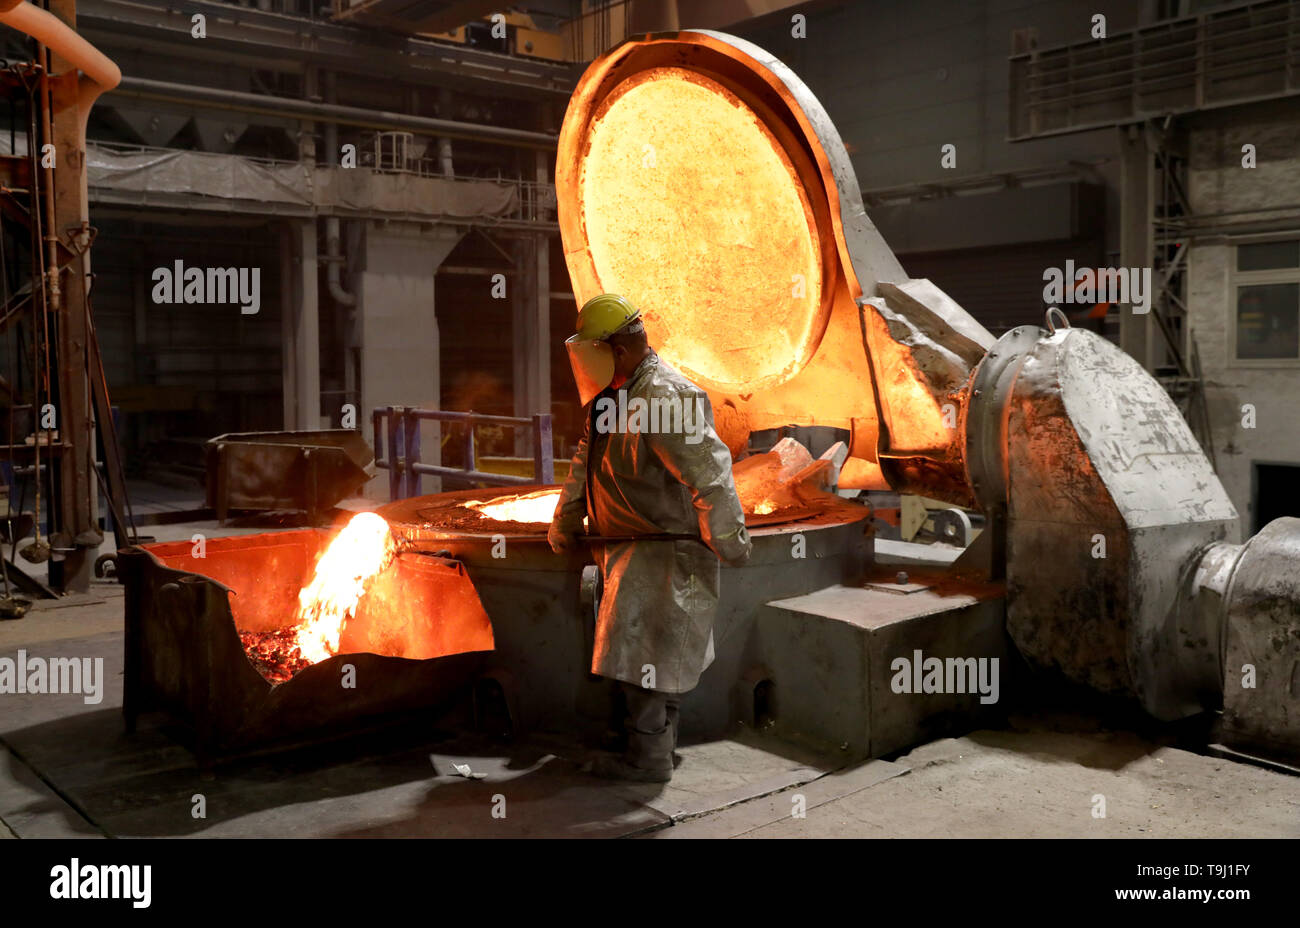 Waren, Germany. 08th May, 2019. In the foundry of Mecklenburger Metallguss GmbH MMG the slag is removed from the aluminium bronze before casting a large ship propeller. A total of 165 tons of material with a temperature of about 1,170 degrees is poured into a mold. The propeller for a large Korean container freighter will later have a diameter of 10.40 meters and weigh 117 tons. Less than a year after its transition to independence, MMG sees itself on the upswing again. Credit: Bernd Wüstneck/dpa/Alamy Live News - Stock Image